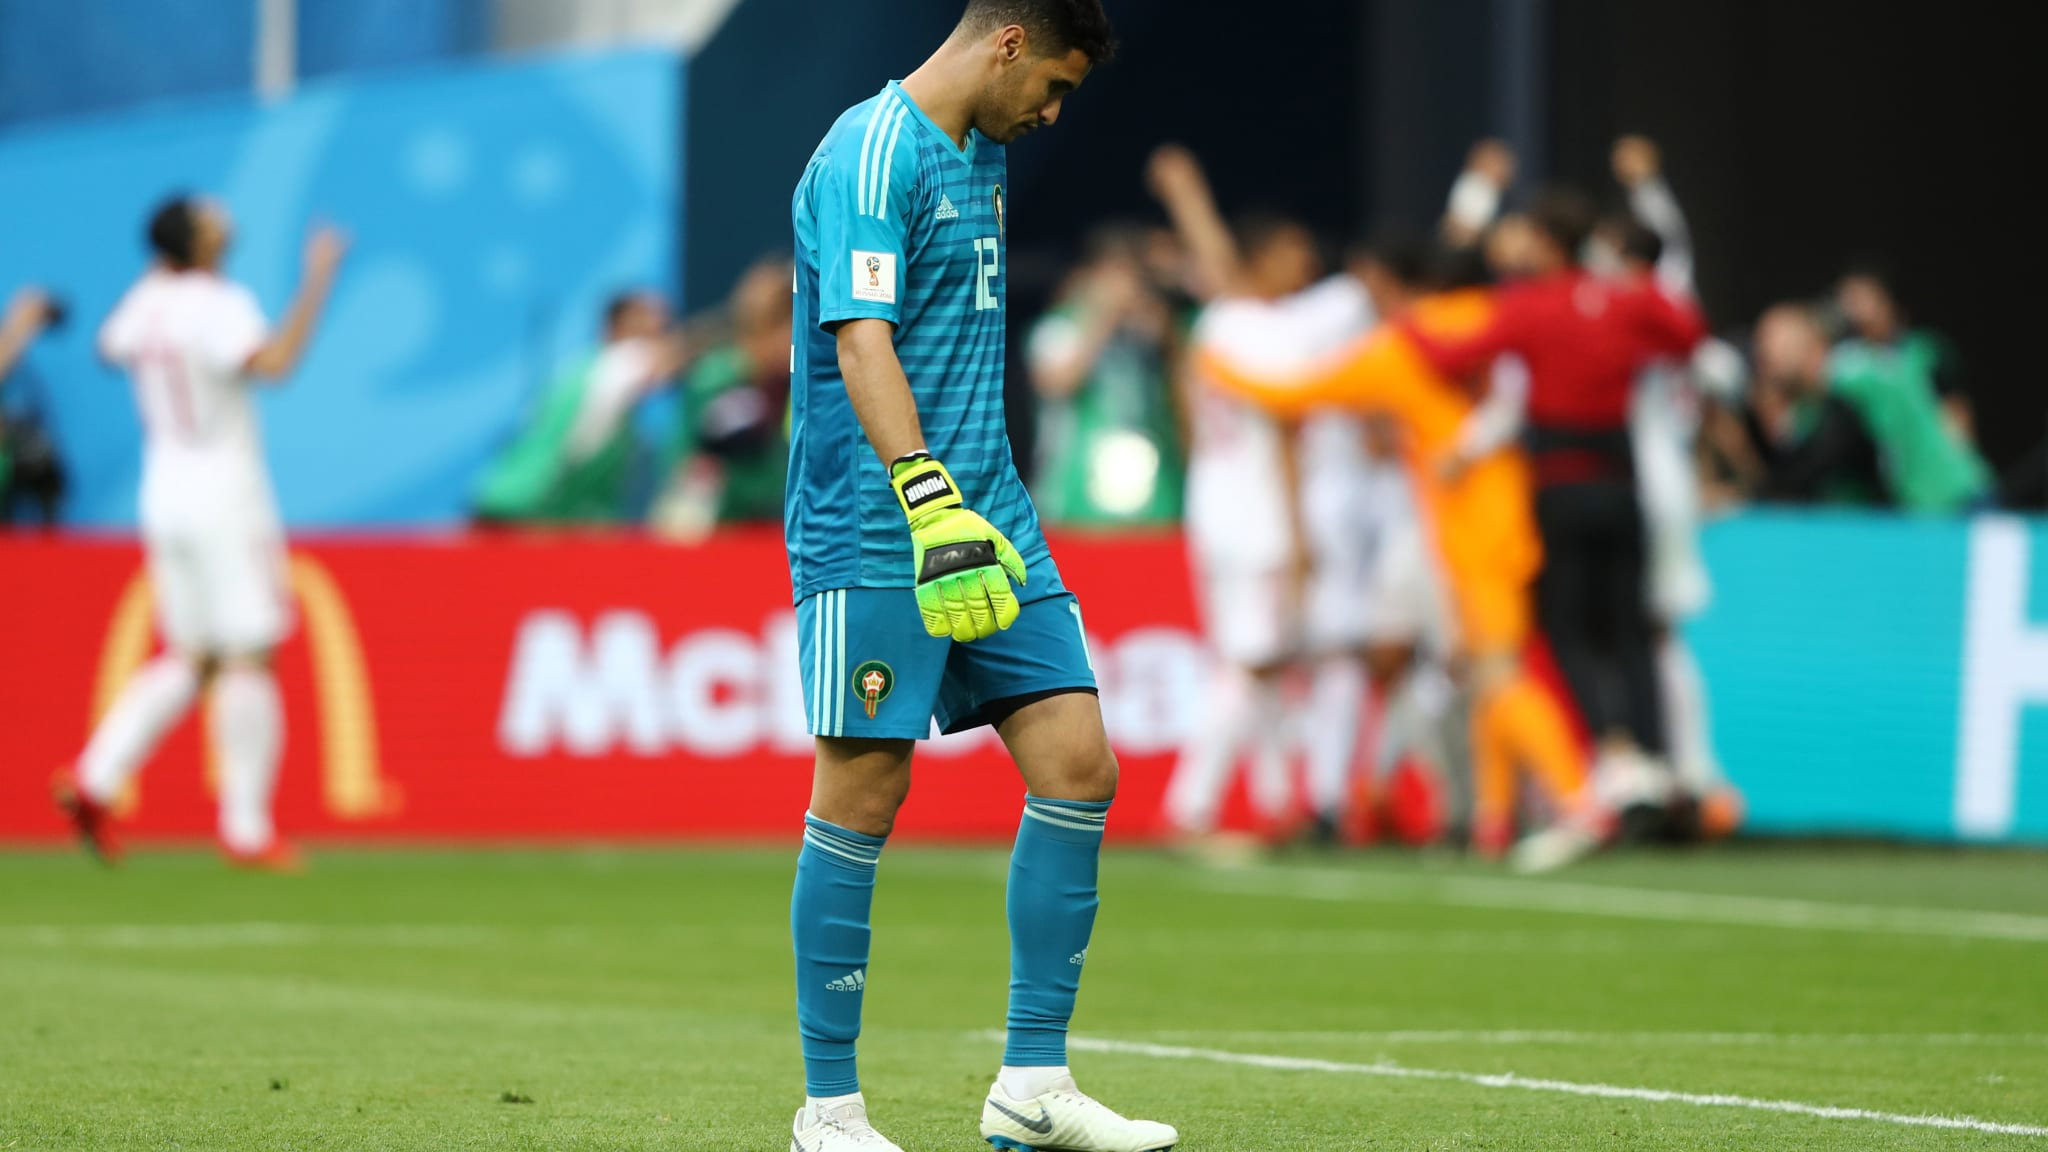 Spain's plan is to top the group by racking up the goals